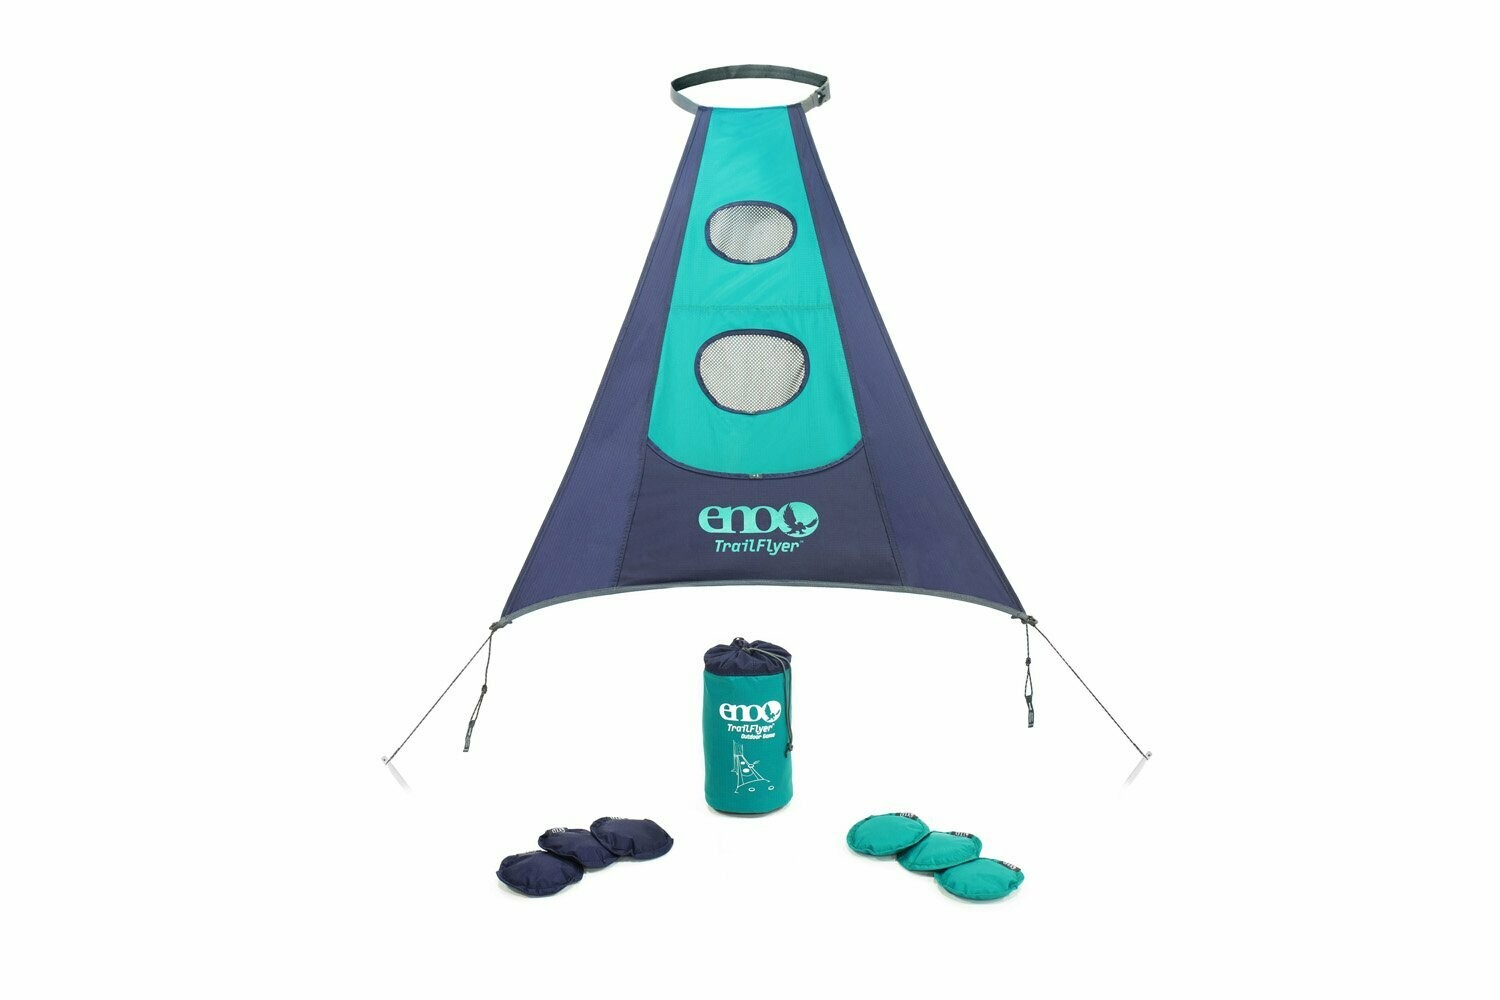 Eno Trailflyer Outdoor Game